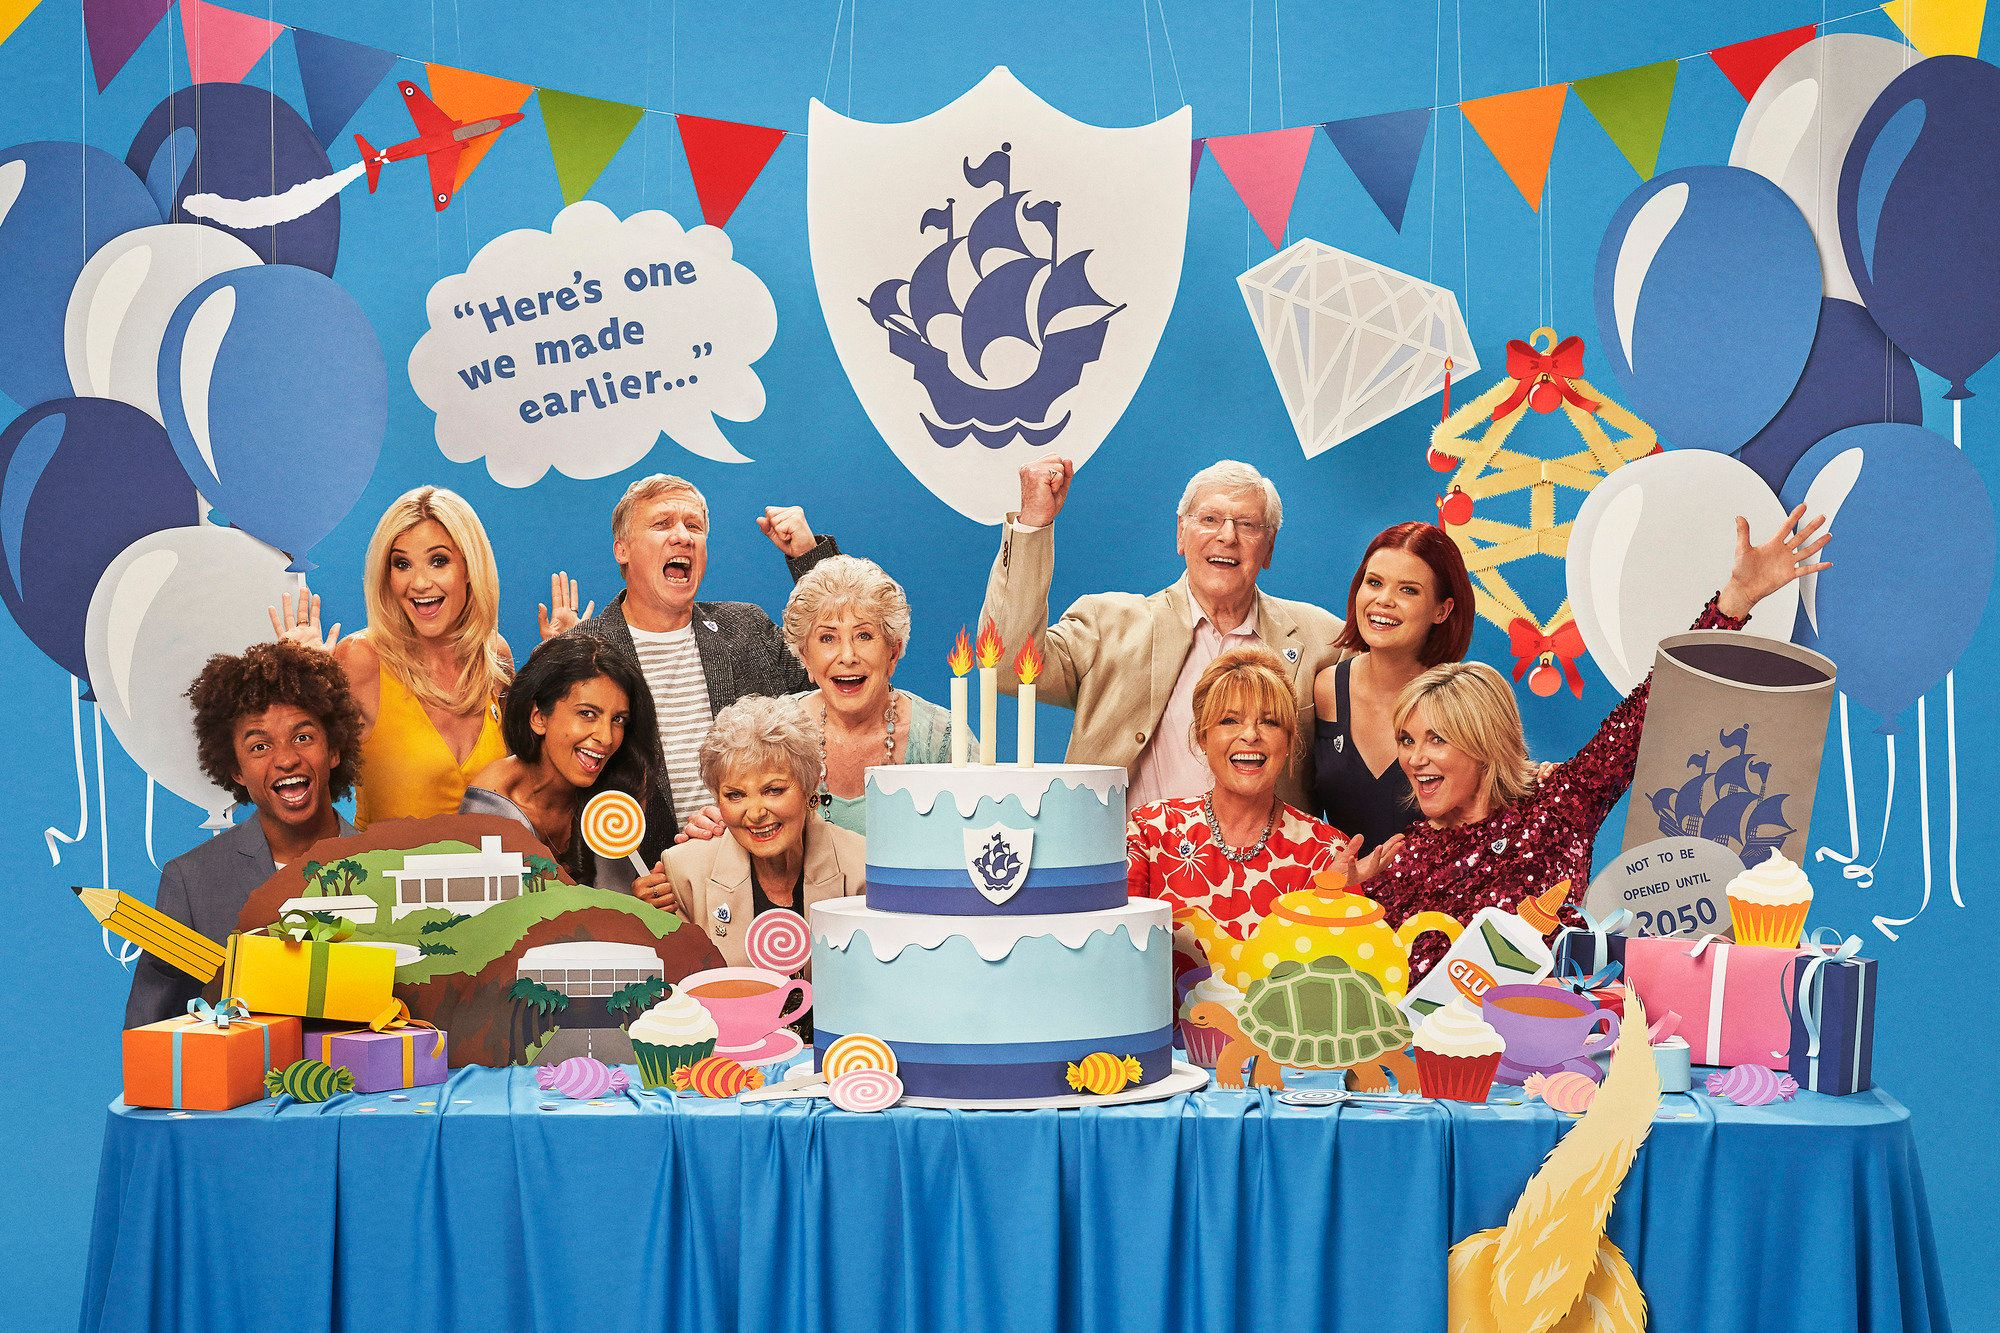 60 Incredible 'Blue Peter' Facts You Didn't Know About The Longest Running Children's TV Show In The